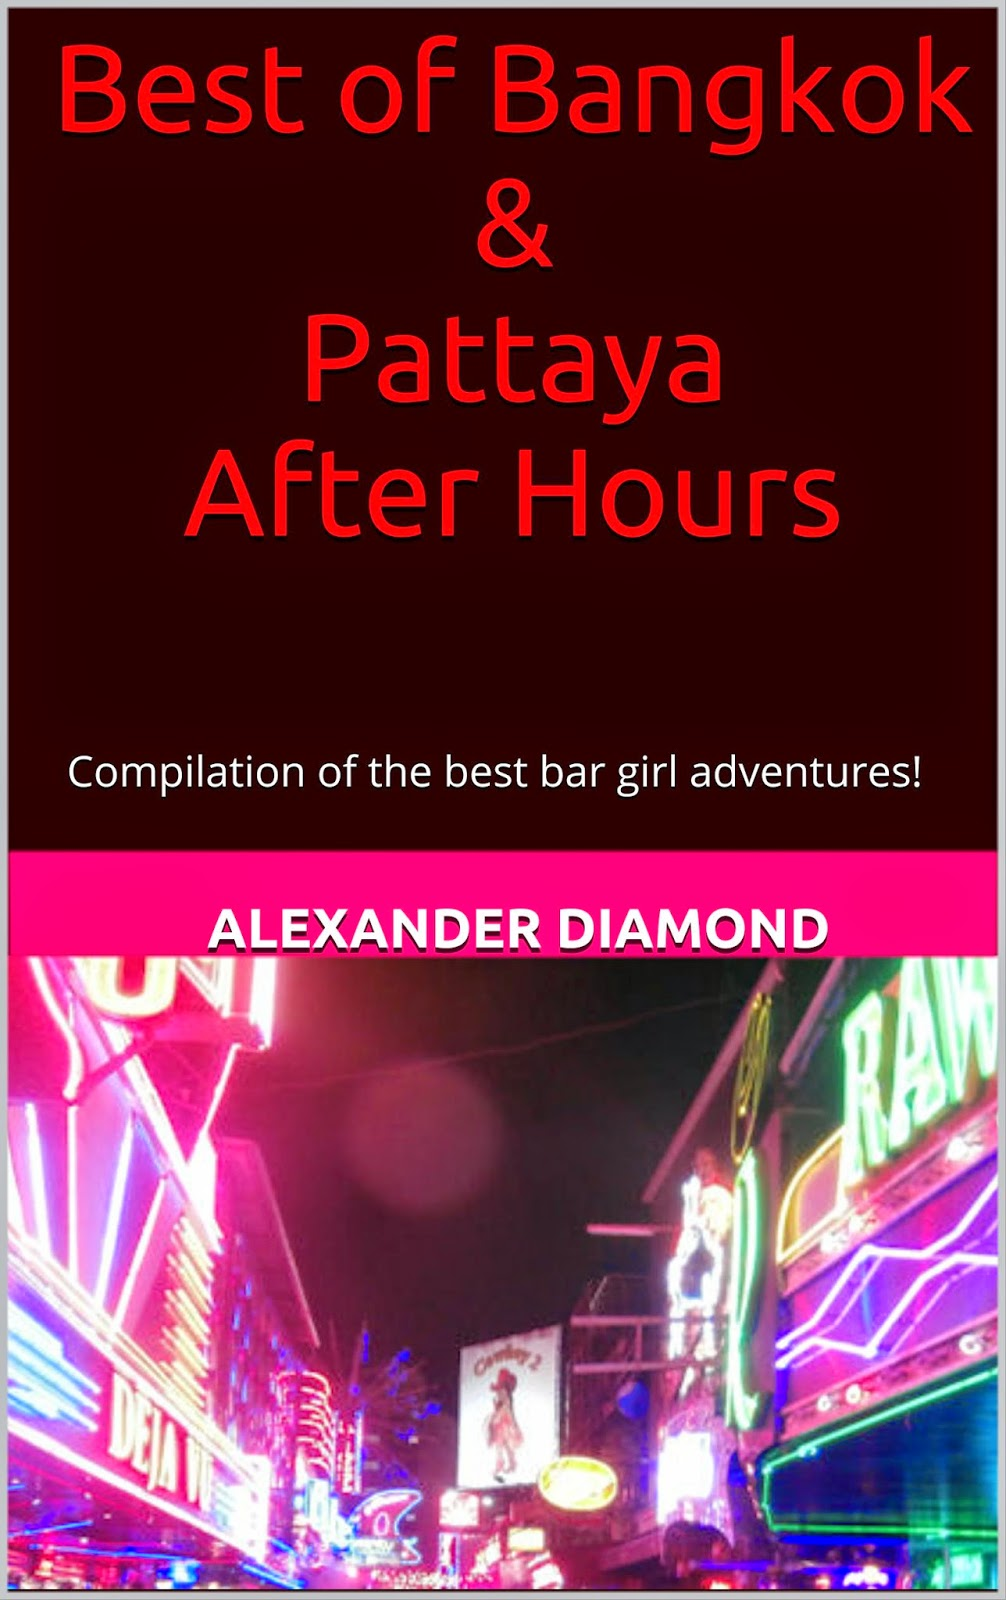 http://www.amazon.com/Best-Bangkok-Pattaya-After-Hours-ebook/dp/B00M68SZHO/ref=sr_1_1?s=digital-text&ie=UTF8&qid=1406498661&sr=1-1&keywords=best+of+bangkok+%26+Pattaya+after+hours